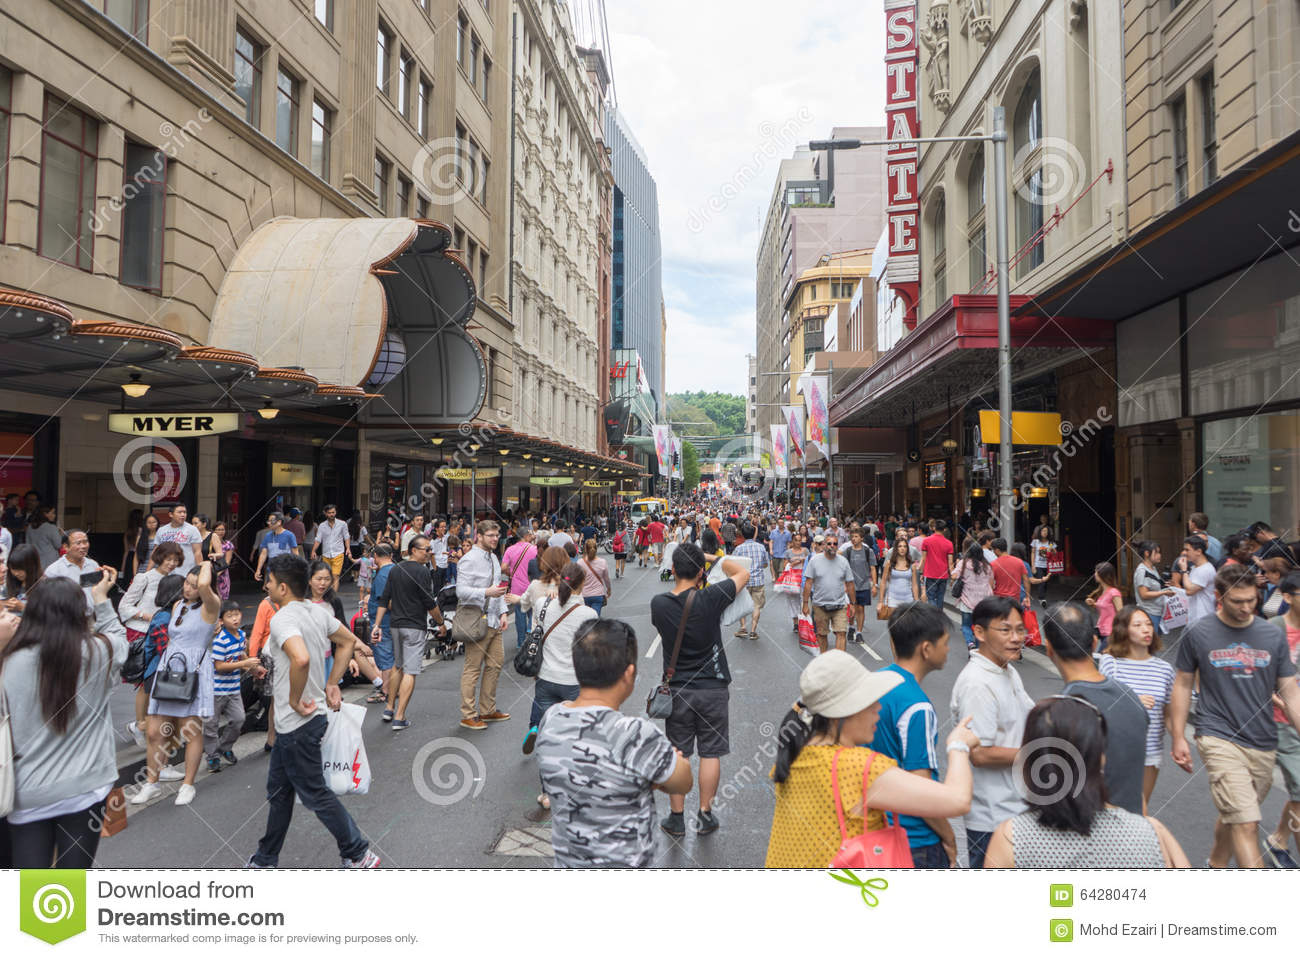 Retail Investment Property for sale in Sydney CBD The Number One Dixon Shopping Centre is renowned for food, fun and fashion and late night trading conditions are also available to capitalise on the strong retail demand outside of normal business hours.